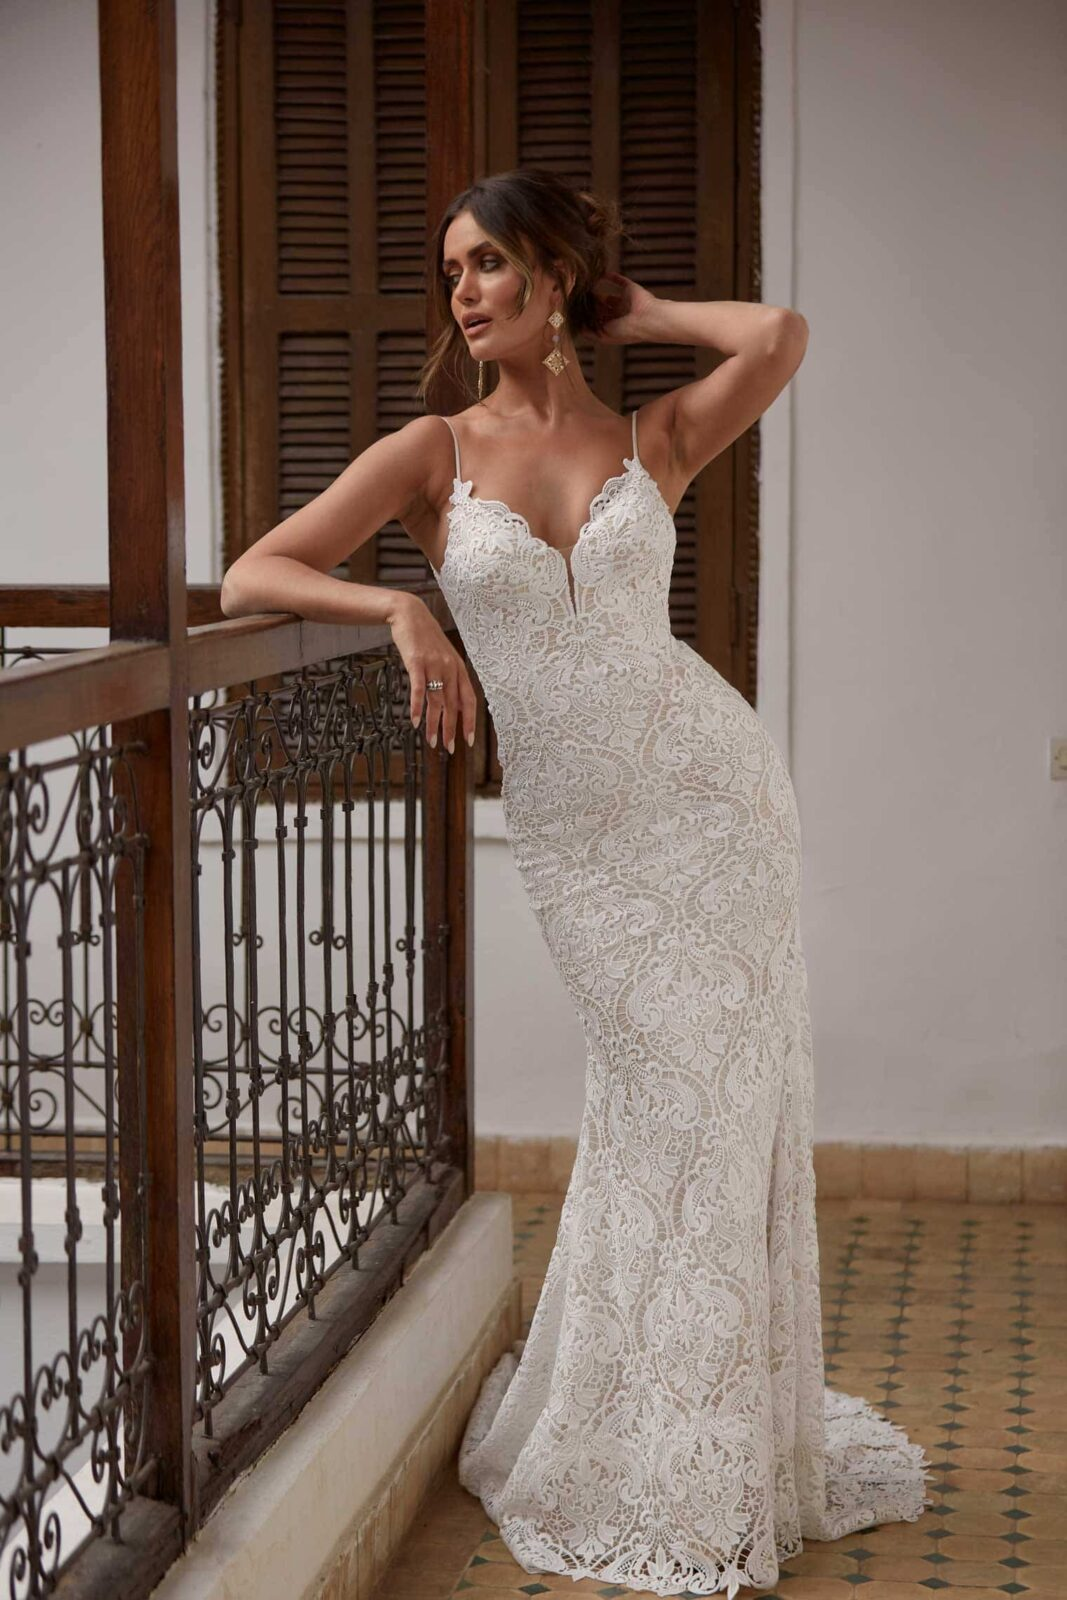 ARWEN-ML17488-FULL-LACE-FITTED-GOWN-WITH-SPAGHETTI-STRAPS-AND-DETACHABLE-OFF-SHOULDER-FLUTTER-SLEEVES-WEDDING-DRESS-MADI-LANE-BRIDAL4